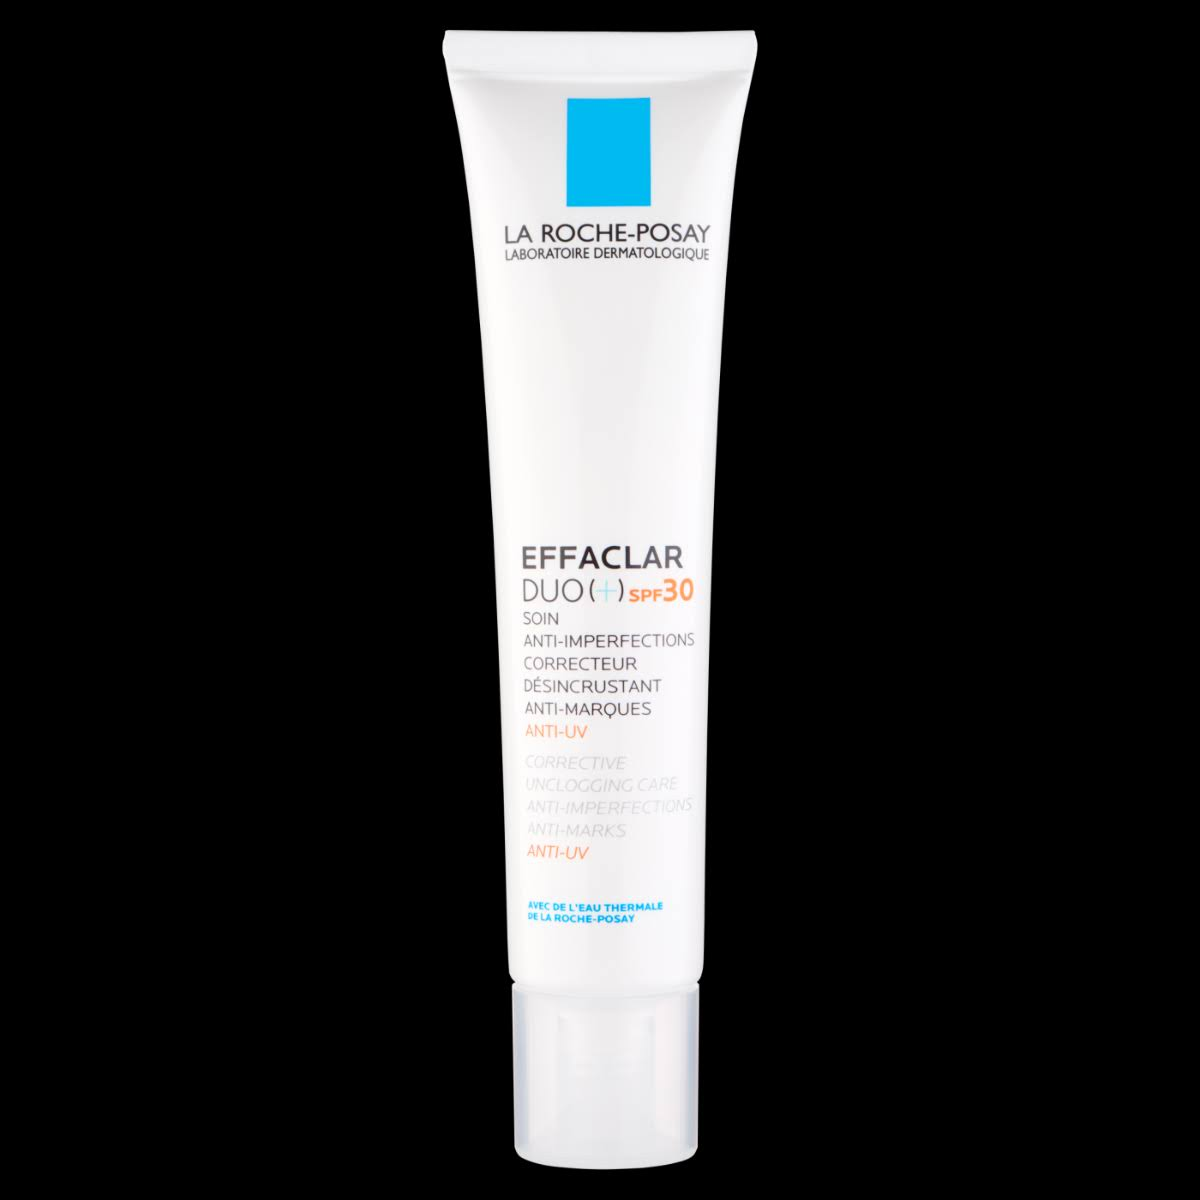 La Roche-Posay Effaclar Duo Plus Anti Blemish Treatment - Spf 30, 40ml